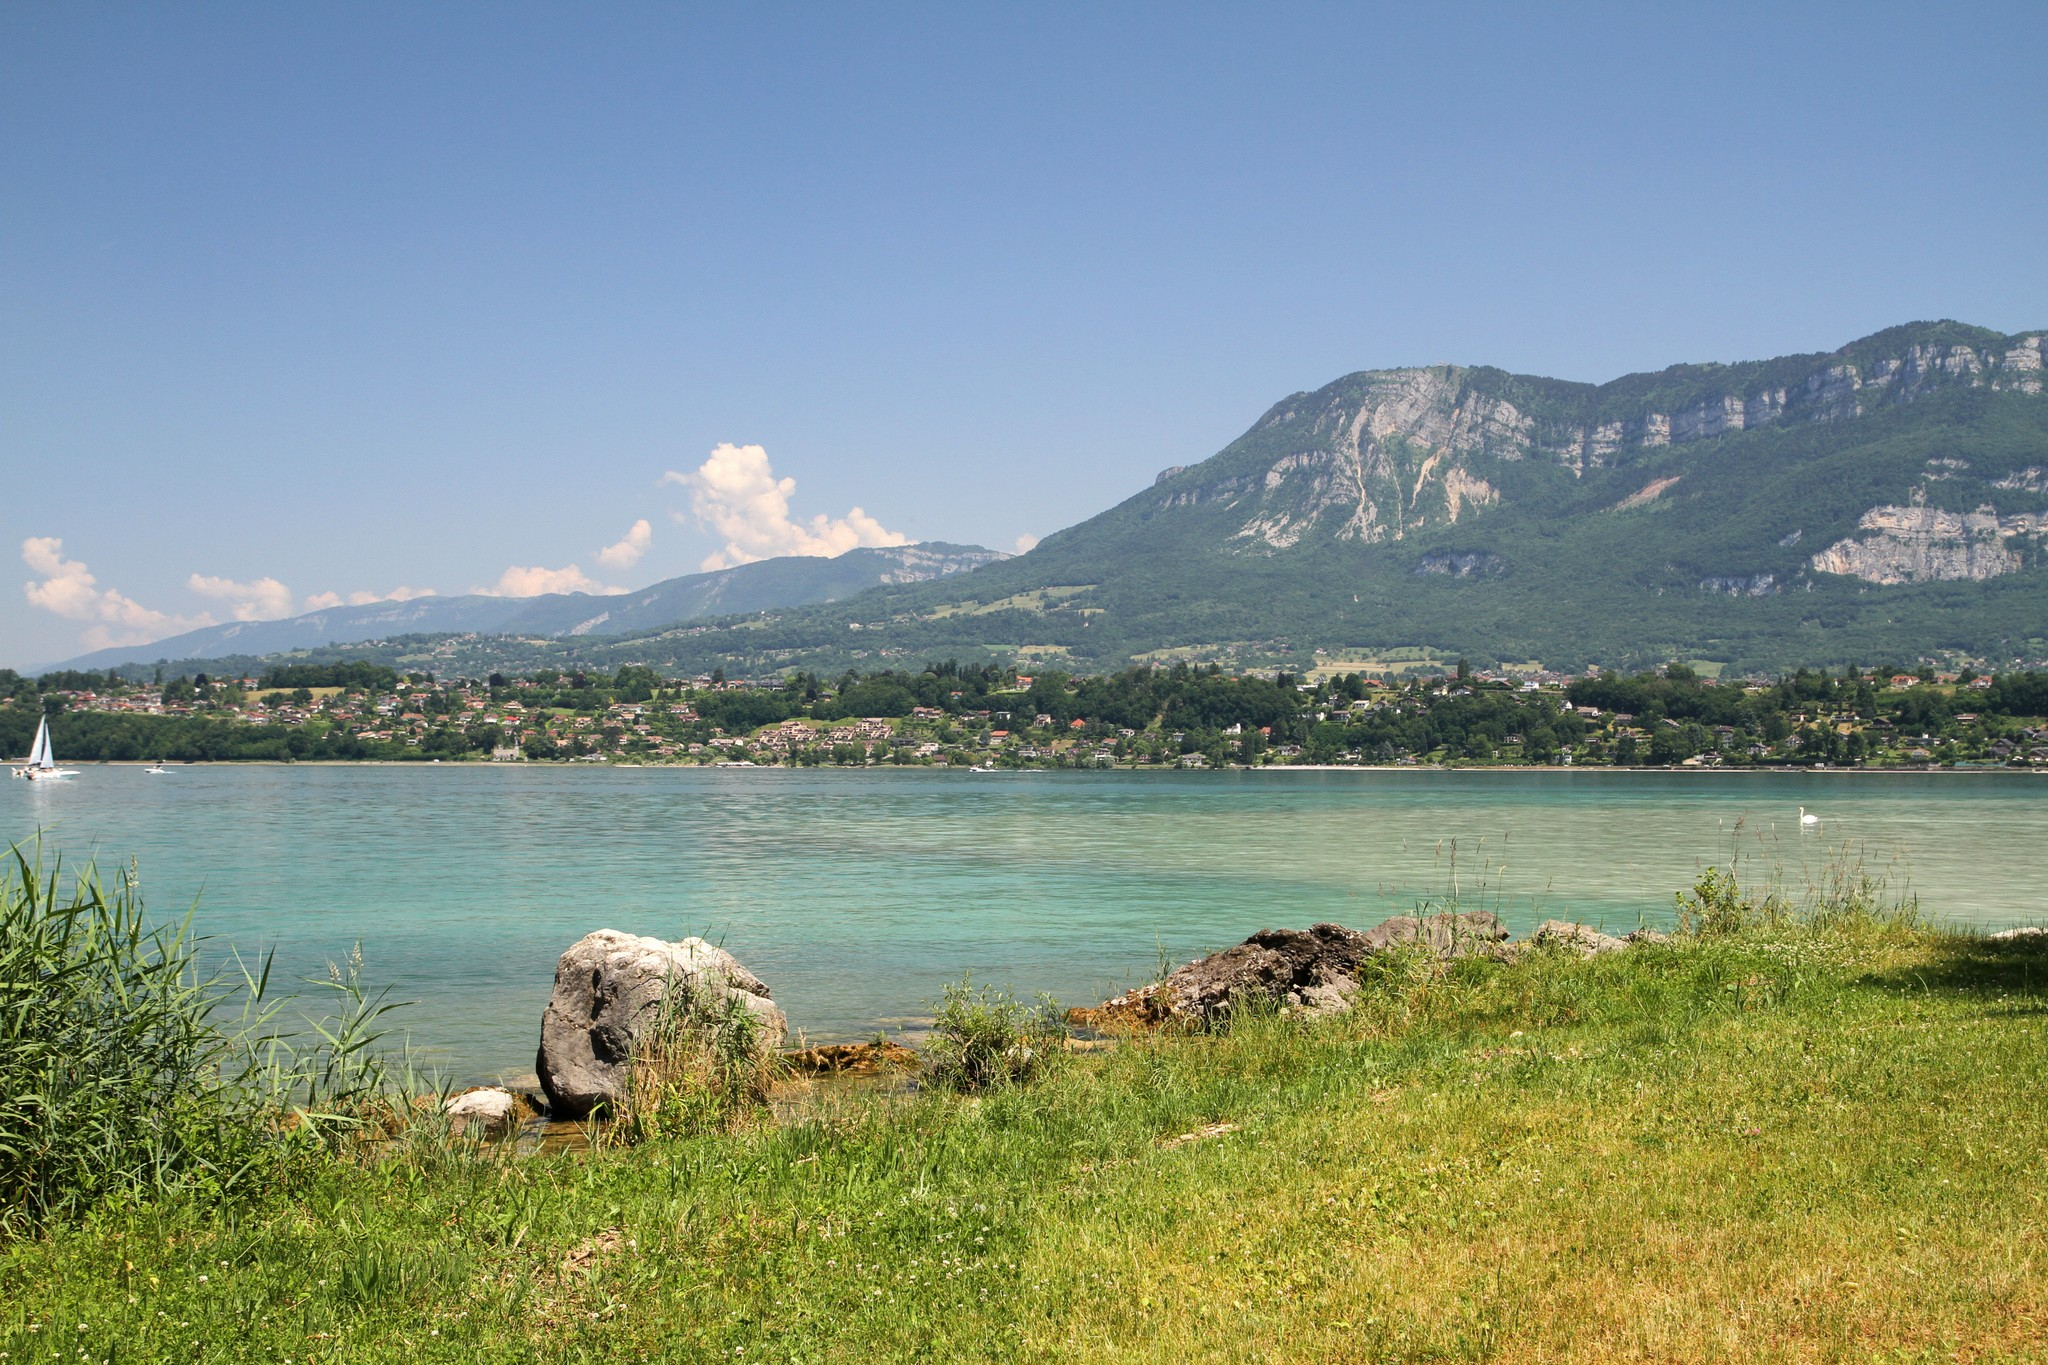 Week end catastrophe au lac du bourget - Meteo bourget du lac ...